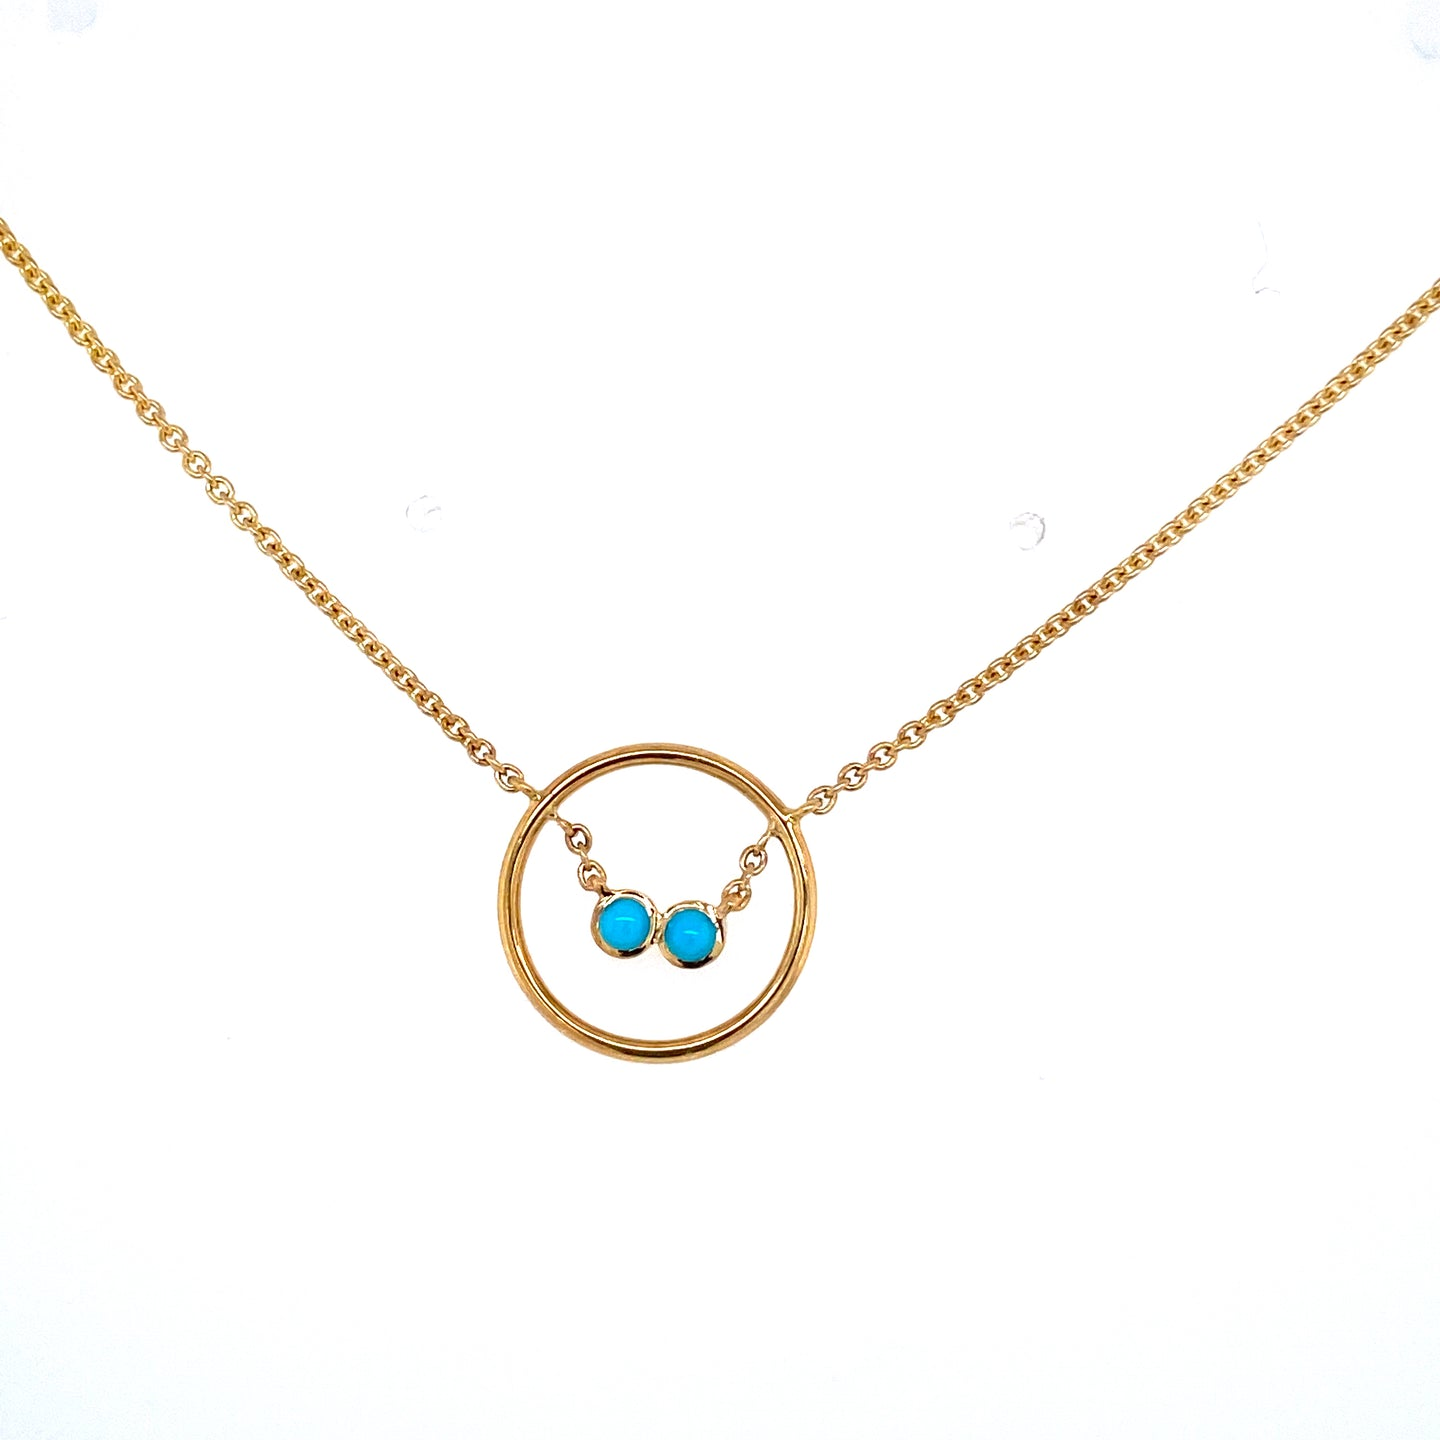 Turquoise Accented Circle Necklace